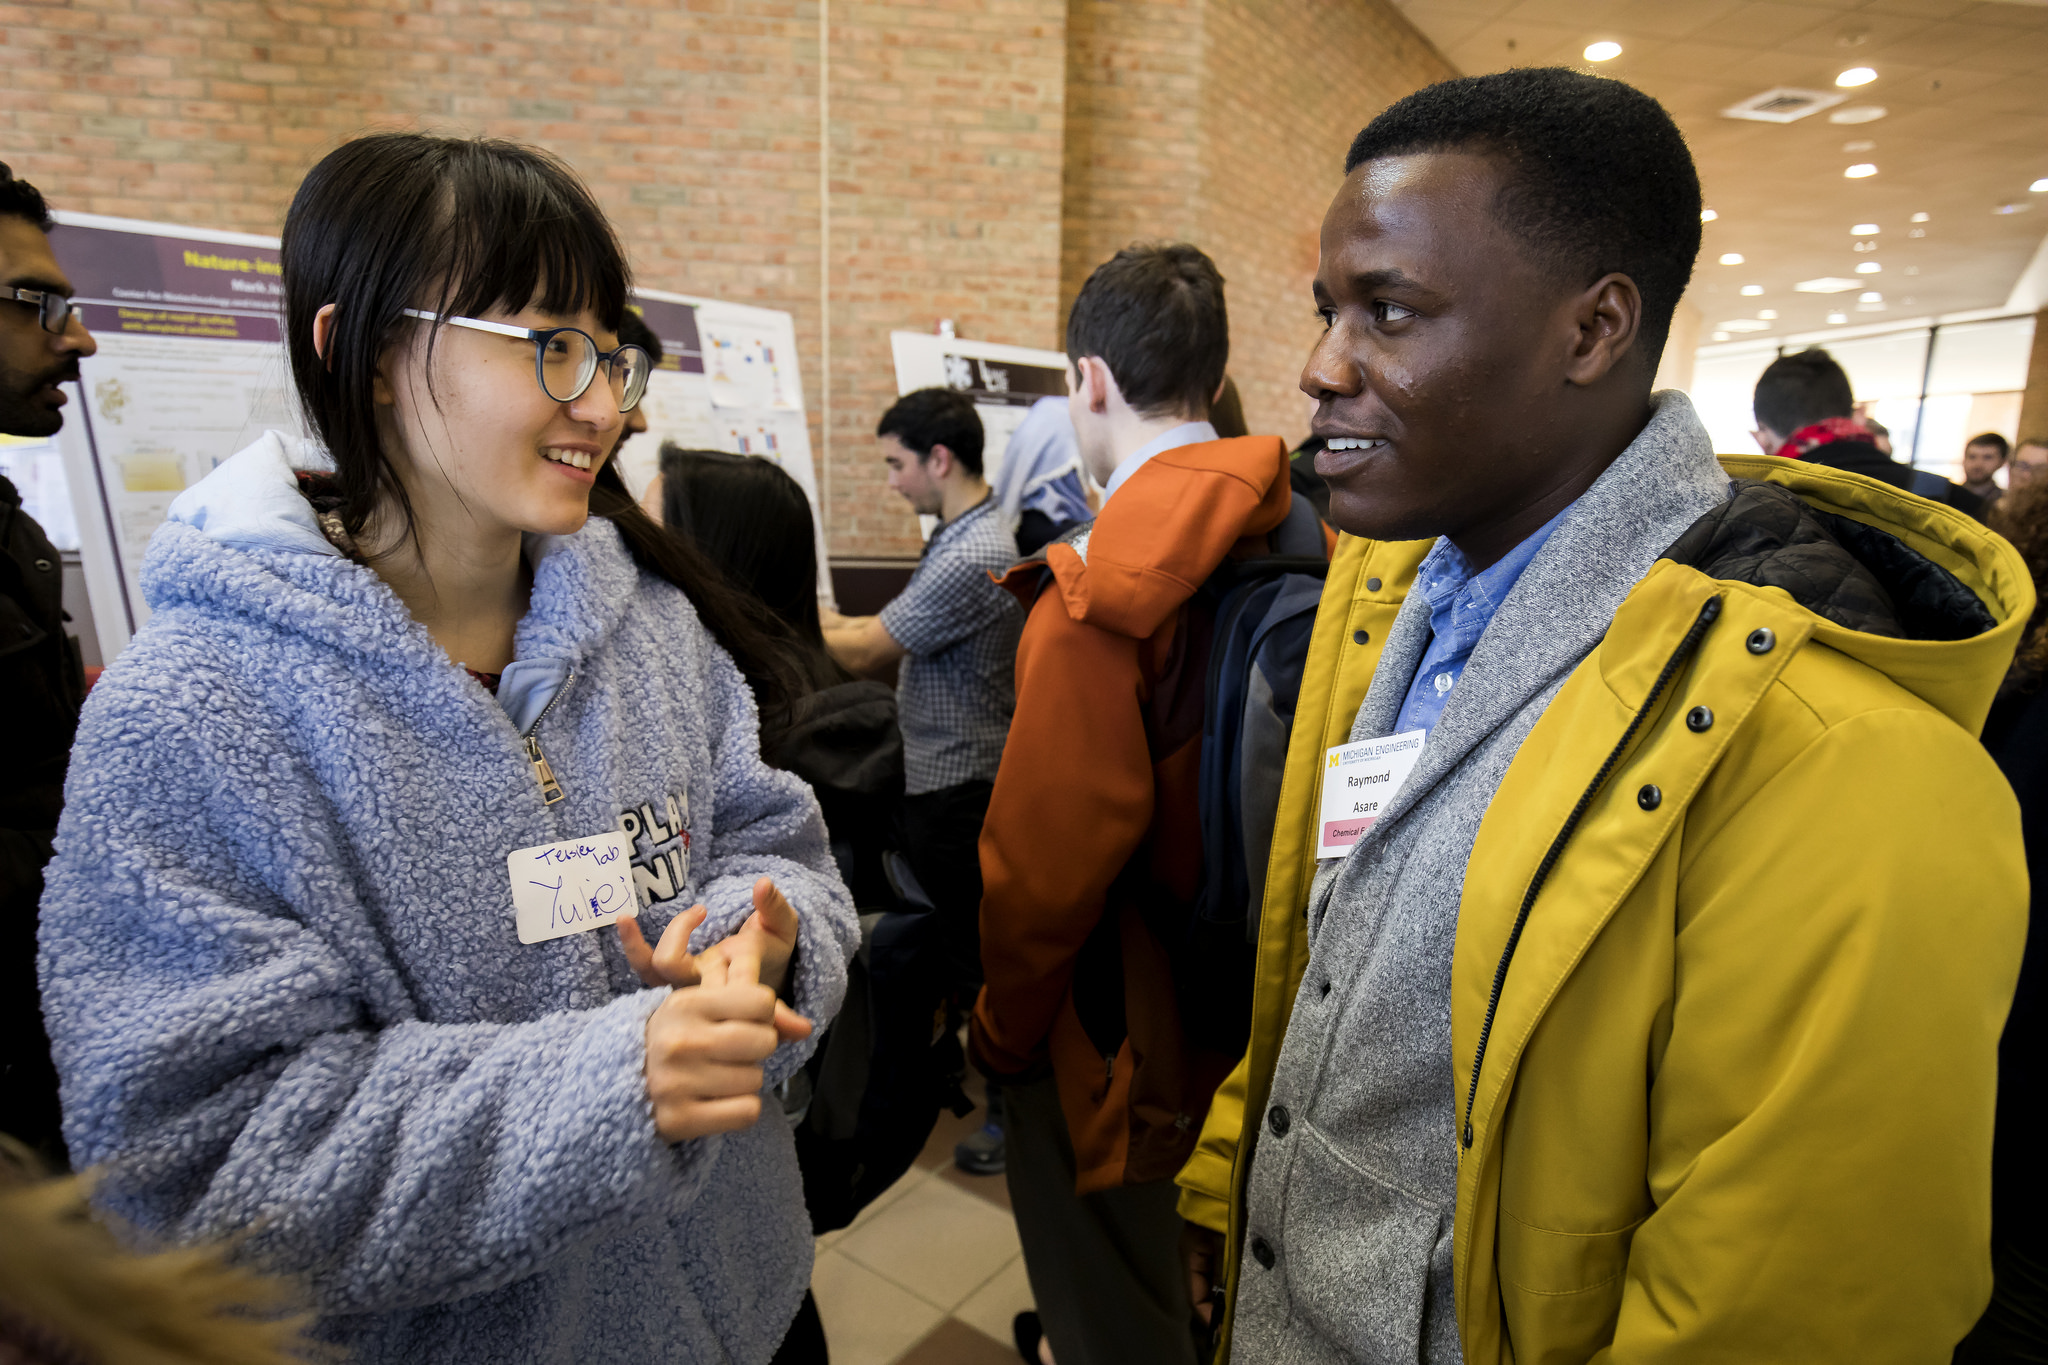 Female graduate student talks with male prospective graduate student during poster session on North Campus of the University of Michigan